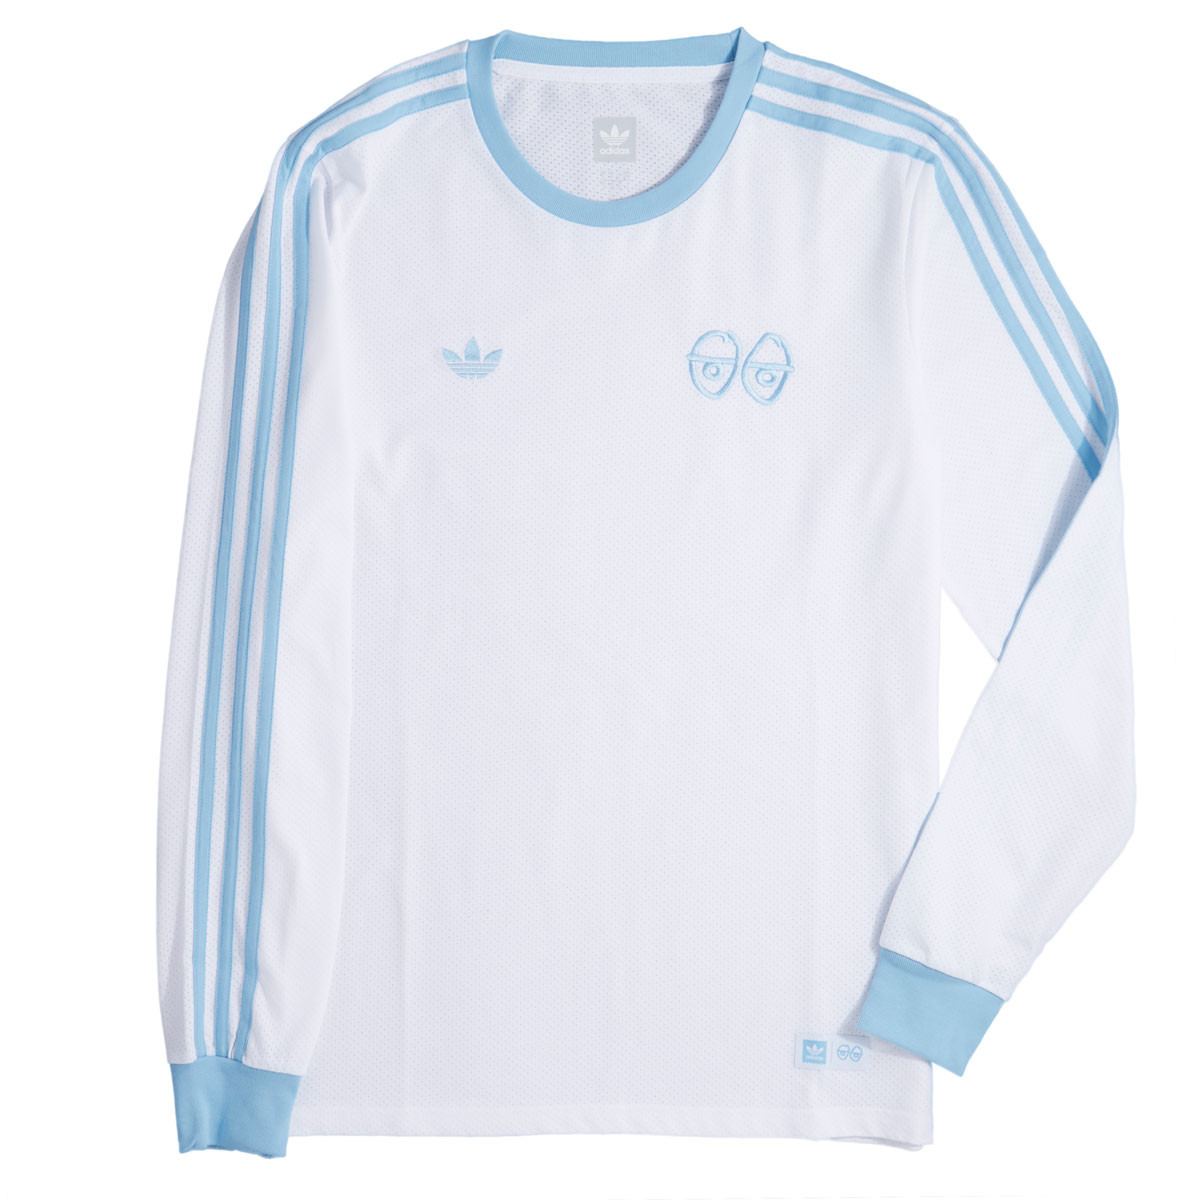 Adidas X Krooked T-Shirt - White/Clear Blue